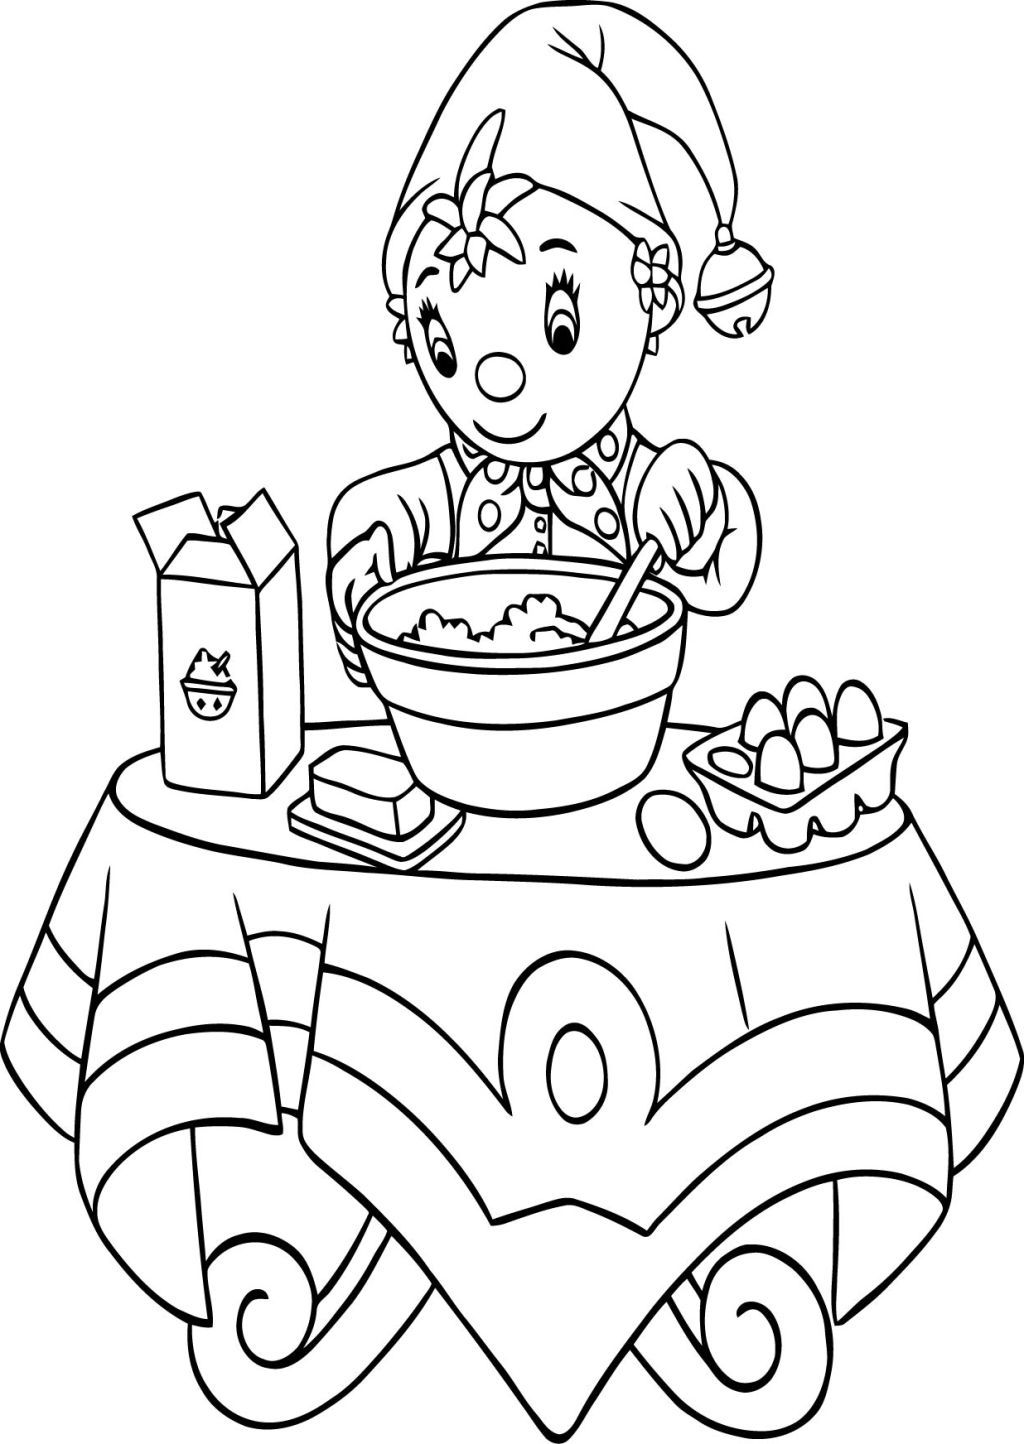 Noddy Coloring Pages » Coloring Pages Kids - Coloring Home